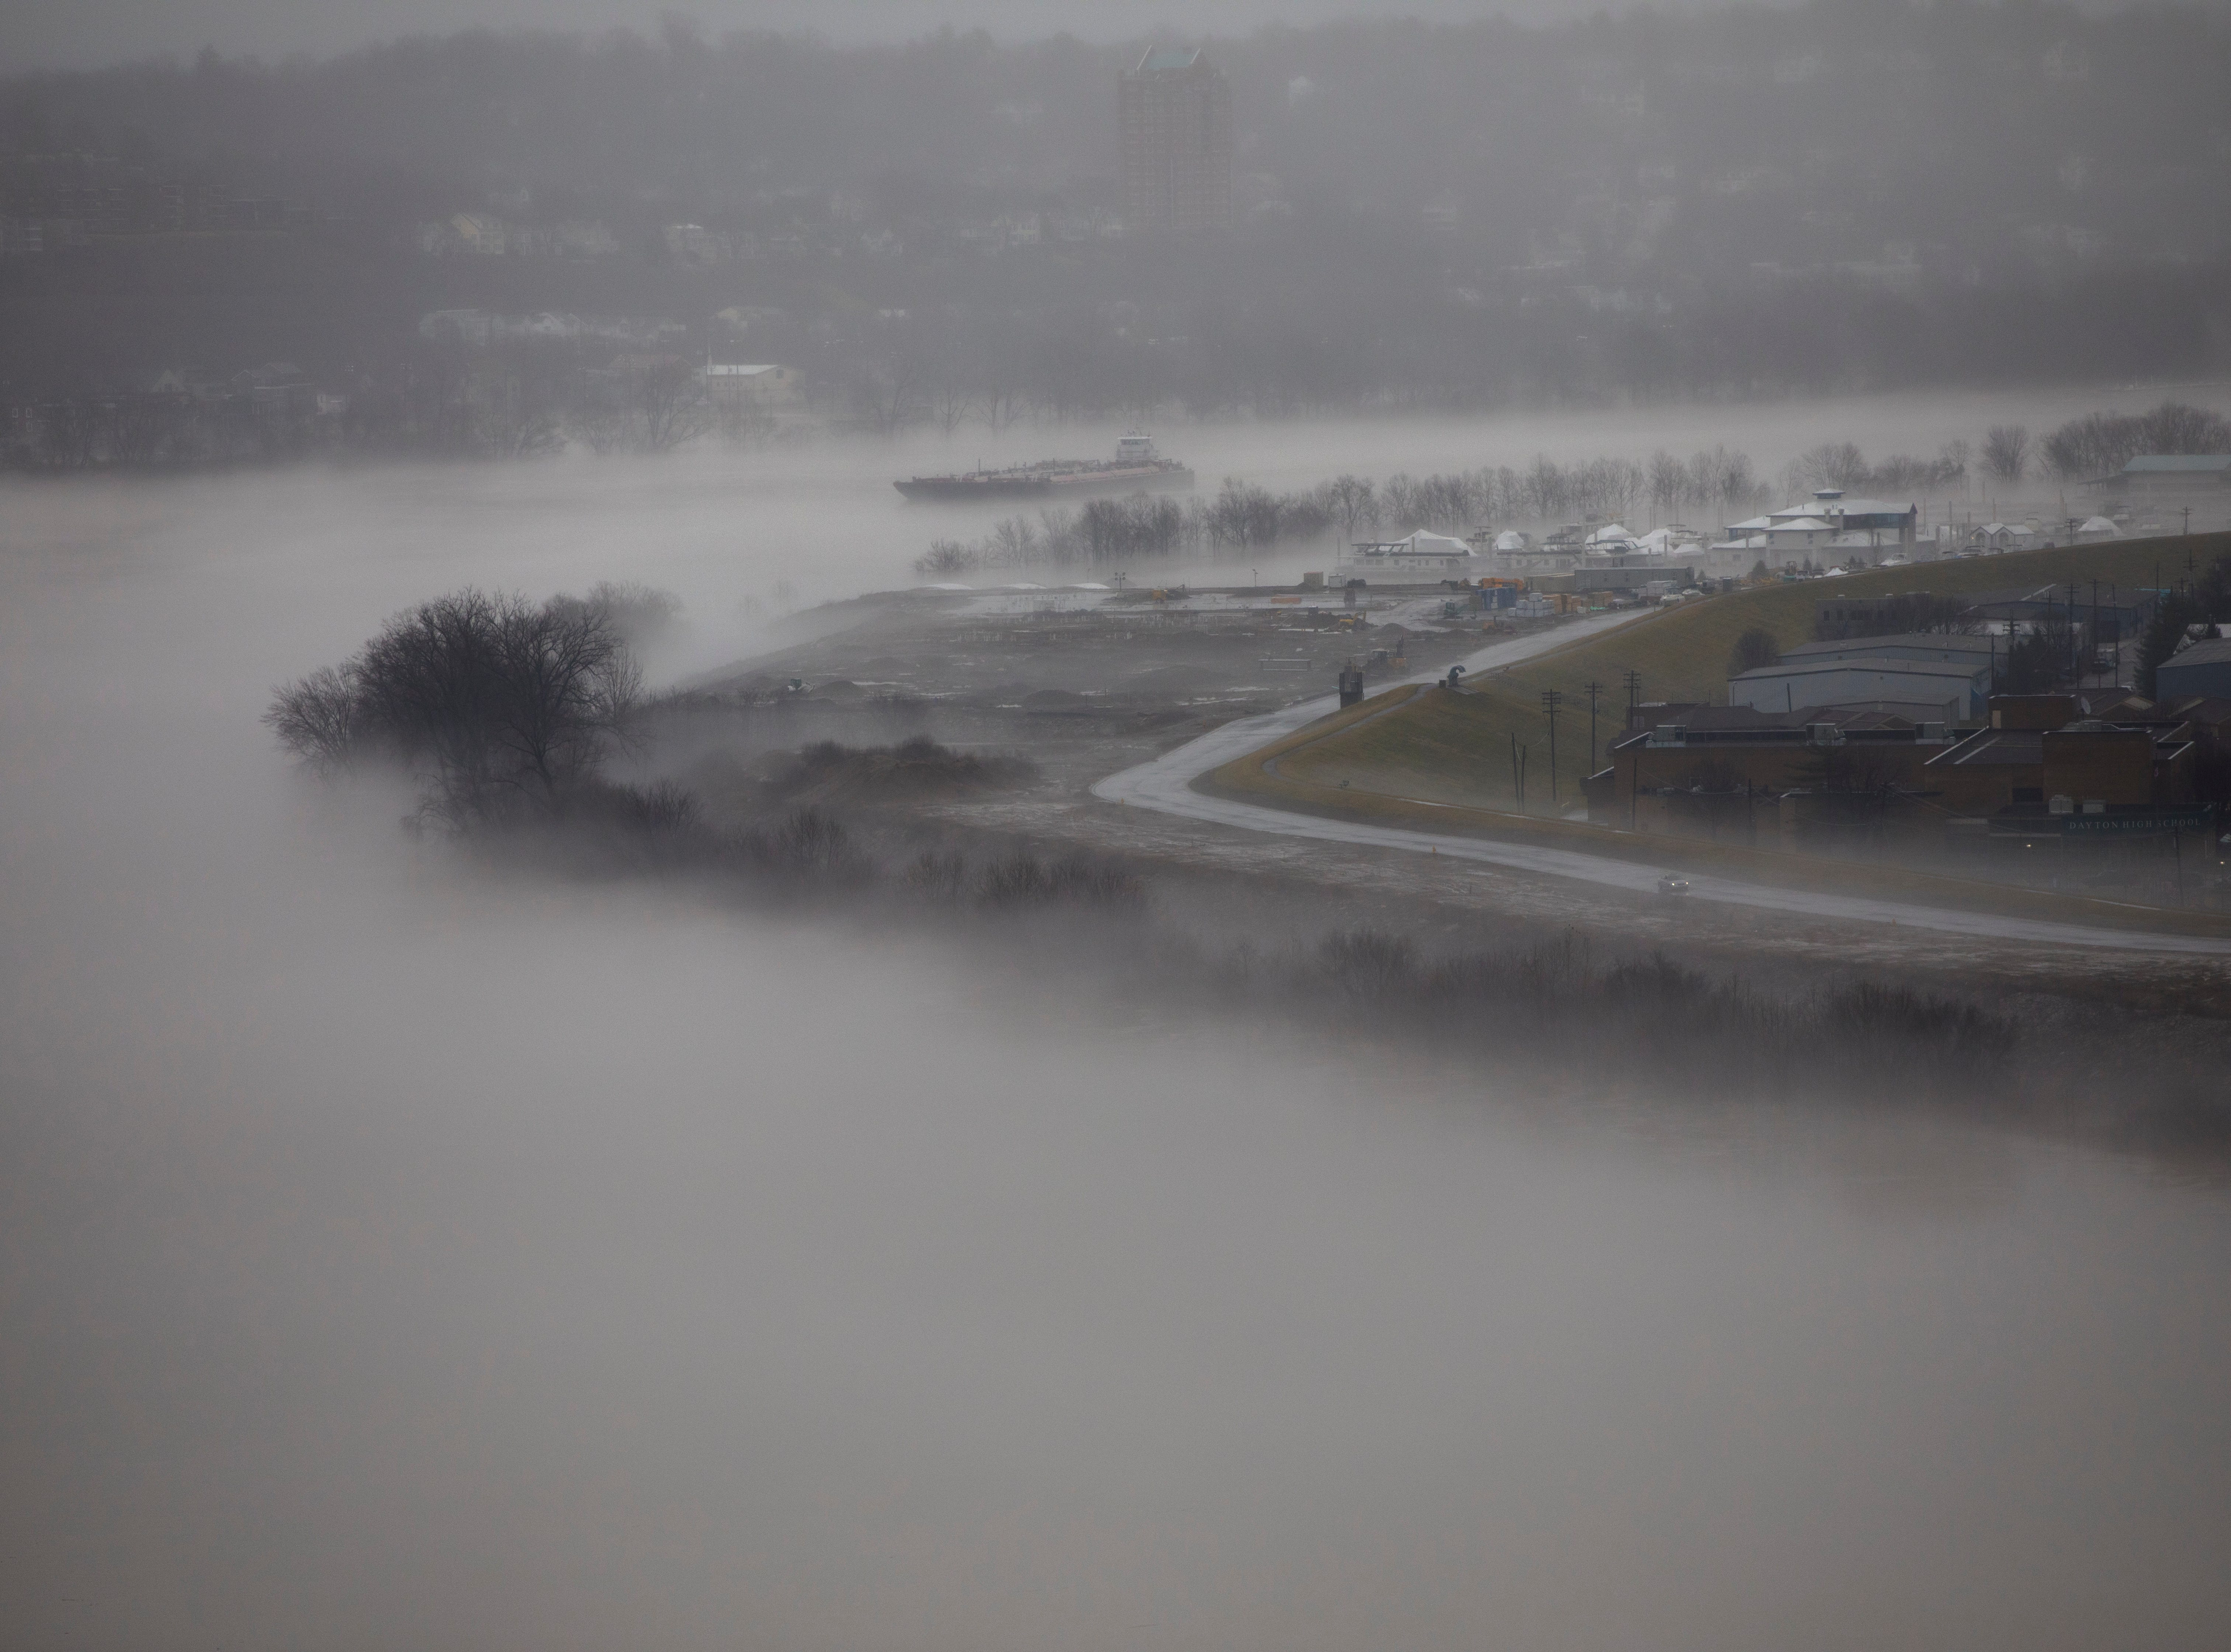 A view of the Ohio River from Eden Park on Tuesday, Feb. 12, 2019. The Ohio River is expected to crest at 56.3 feet at 1 a.m. Wednesday, Feb. 13.